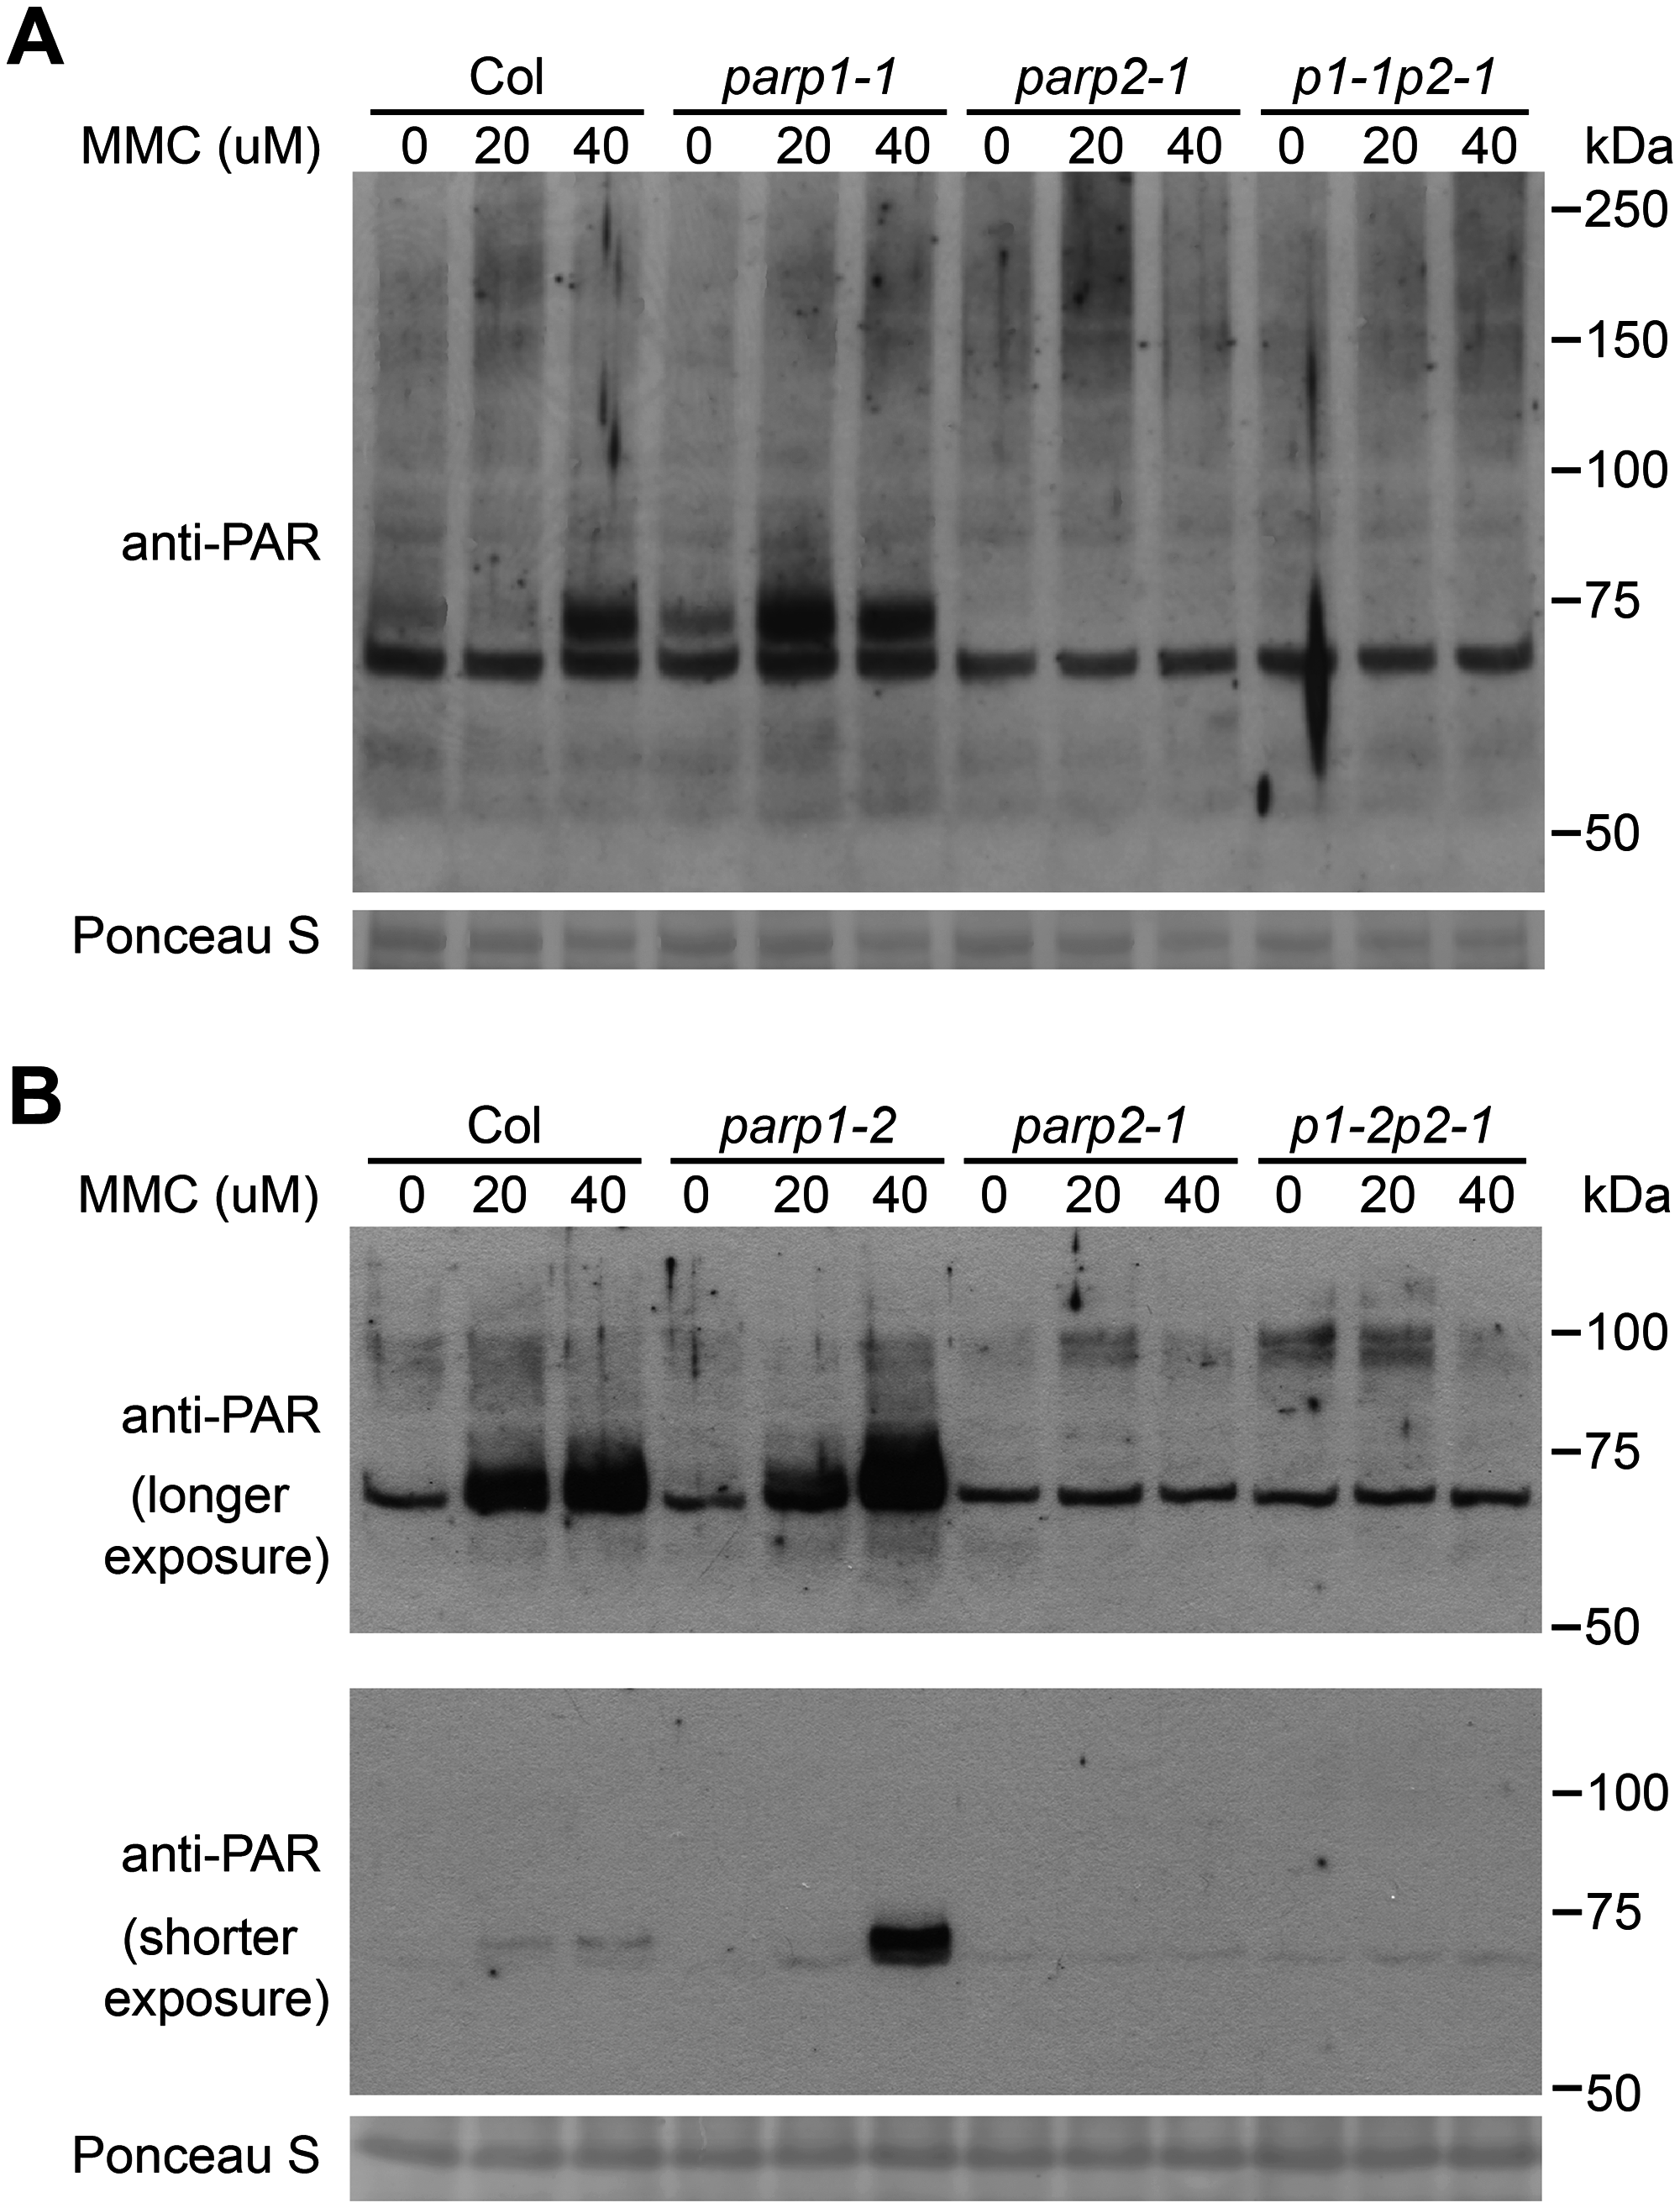 PARP2 activity is regulated by PARP1 in response to DNA alkylating agent mitomycin C.